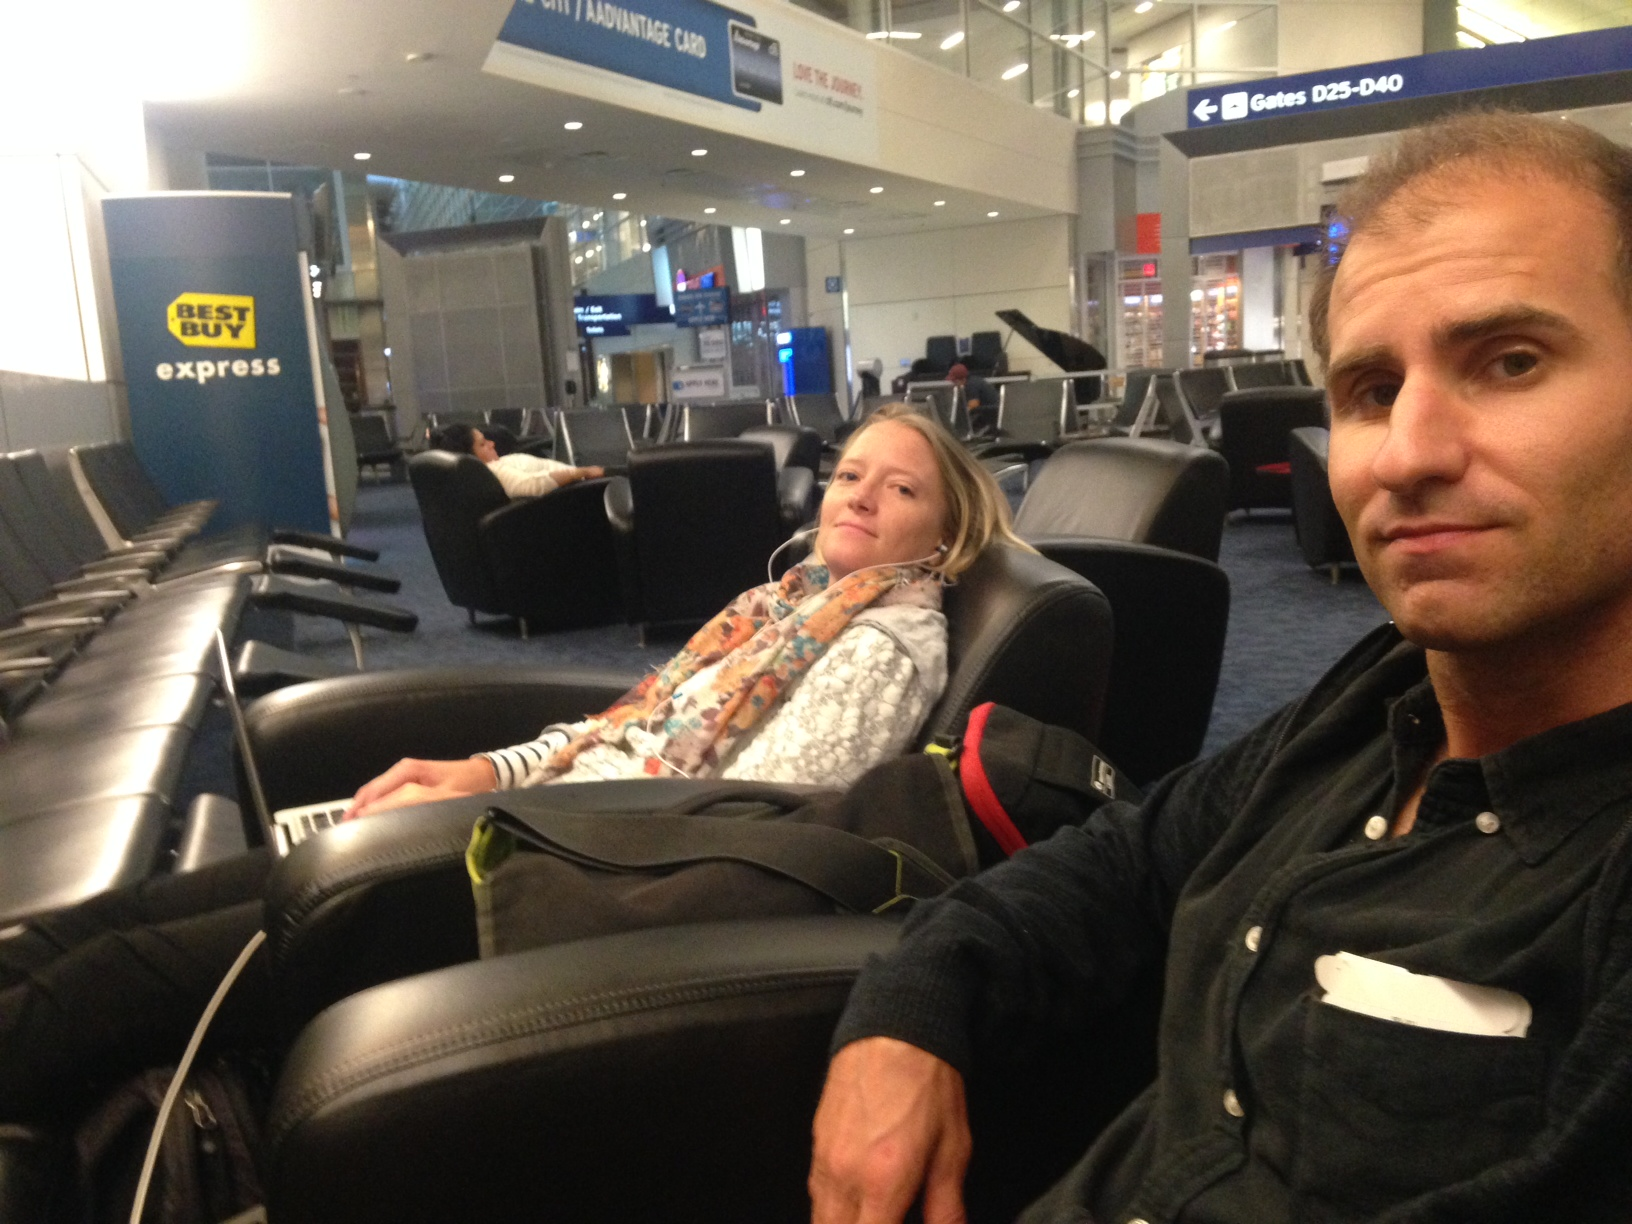 Tom and Nuin-Tara, on the way home,  settling in for a night at the Dallas airport  - photo, Tom Miller